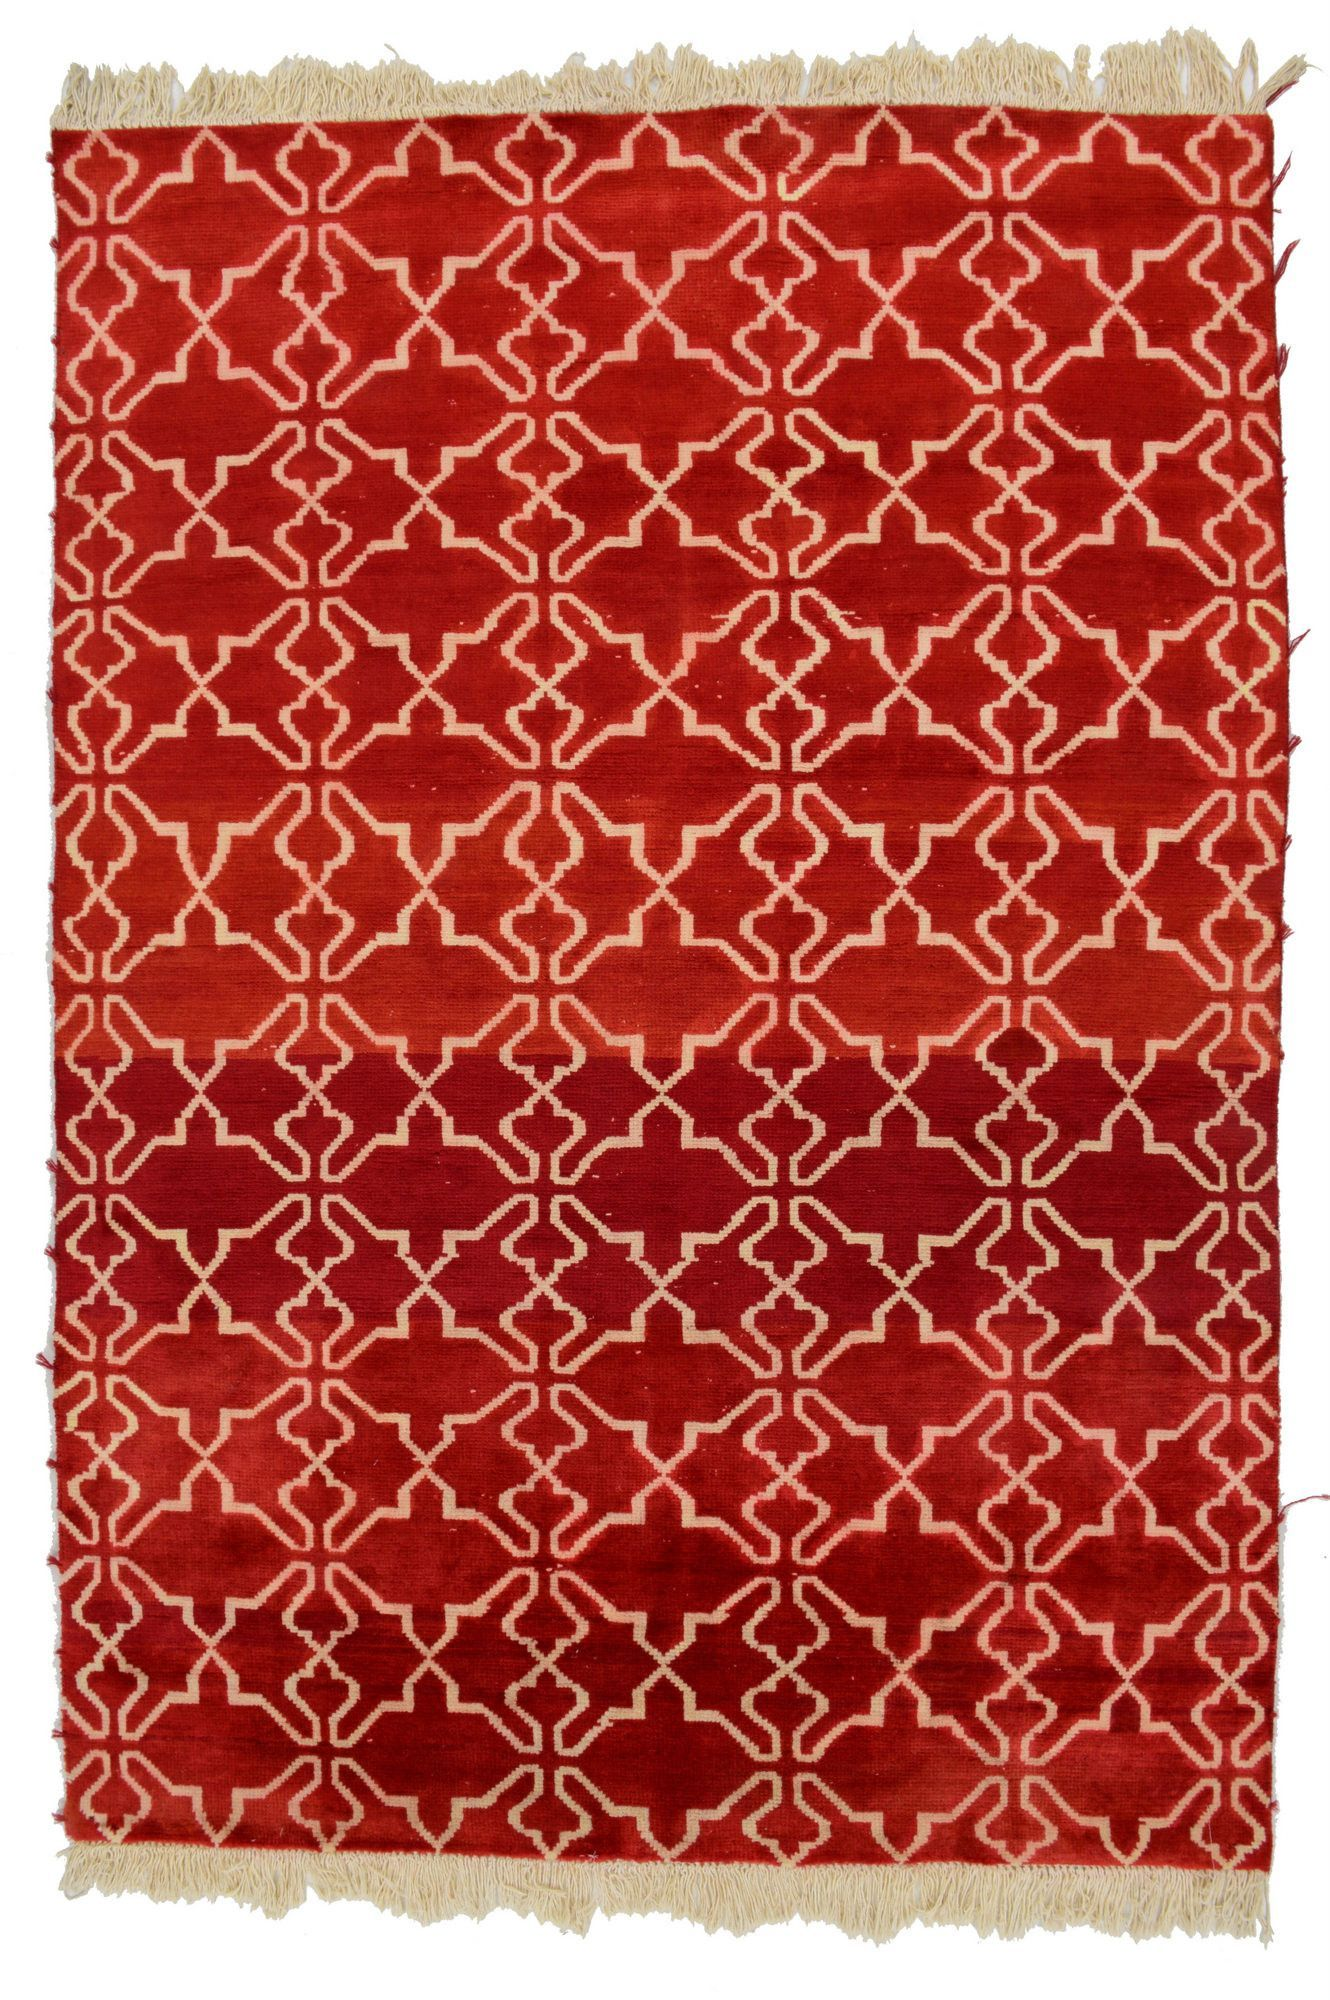 6 X 8 Red Cream Contemporary Rug Modern Area Rugs Rugs Modern Rugs